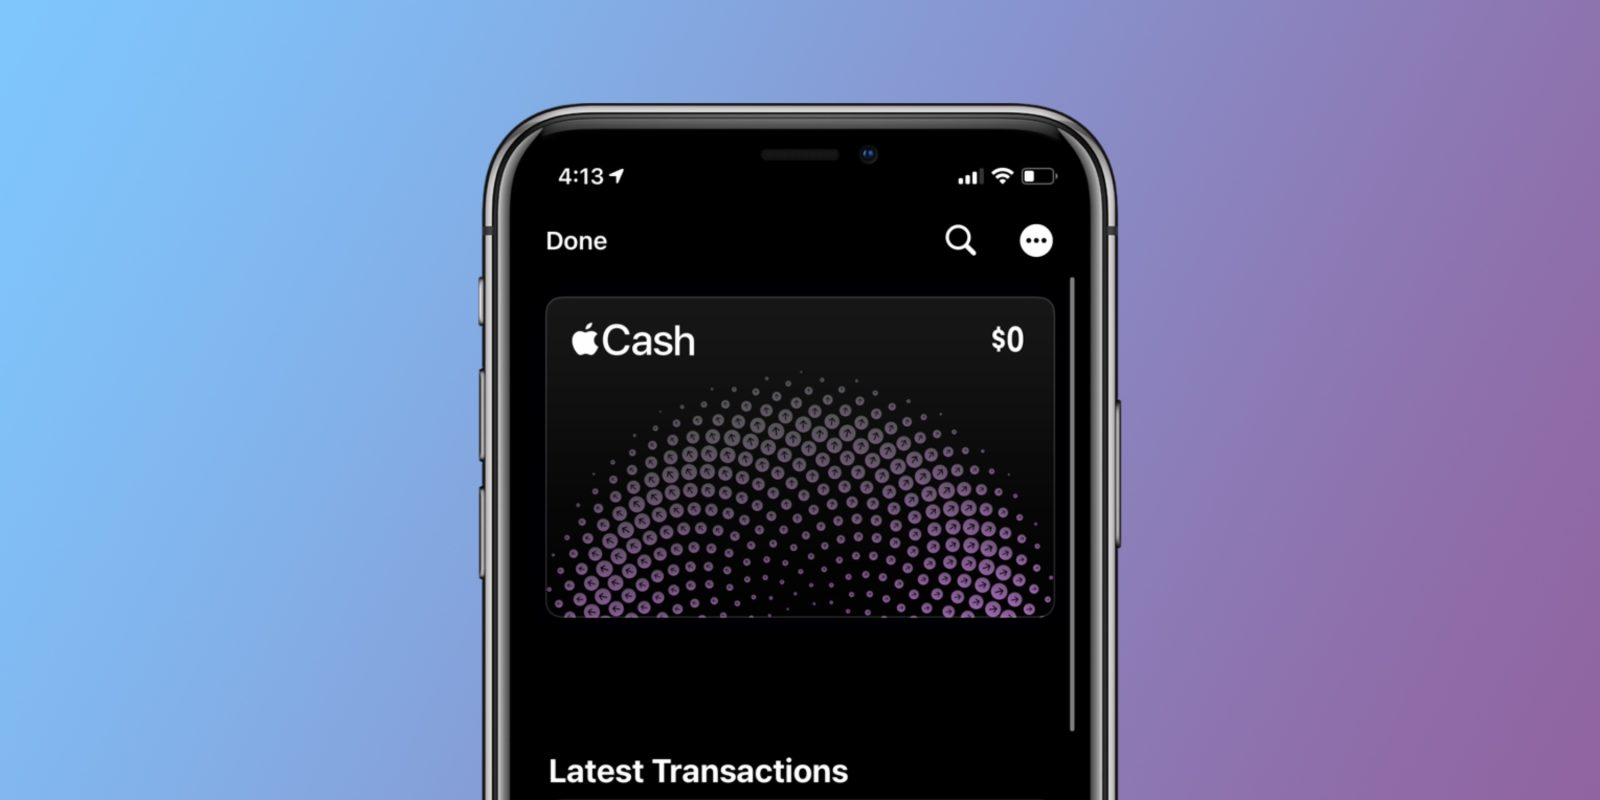 How to set up Apple Cash Family in iOS 14